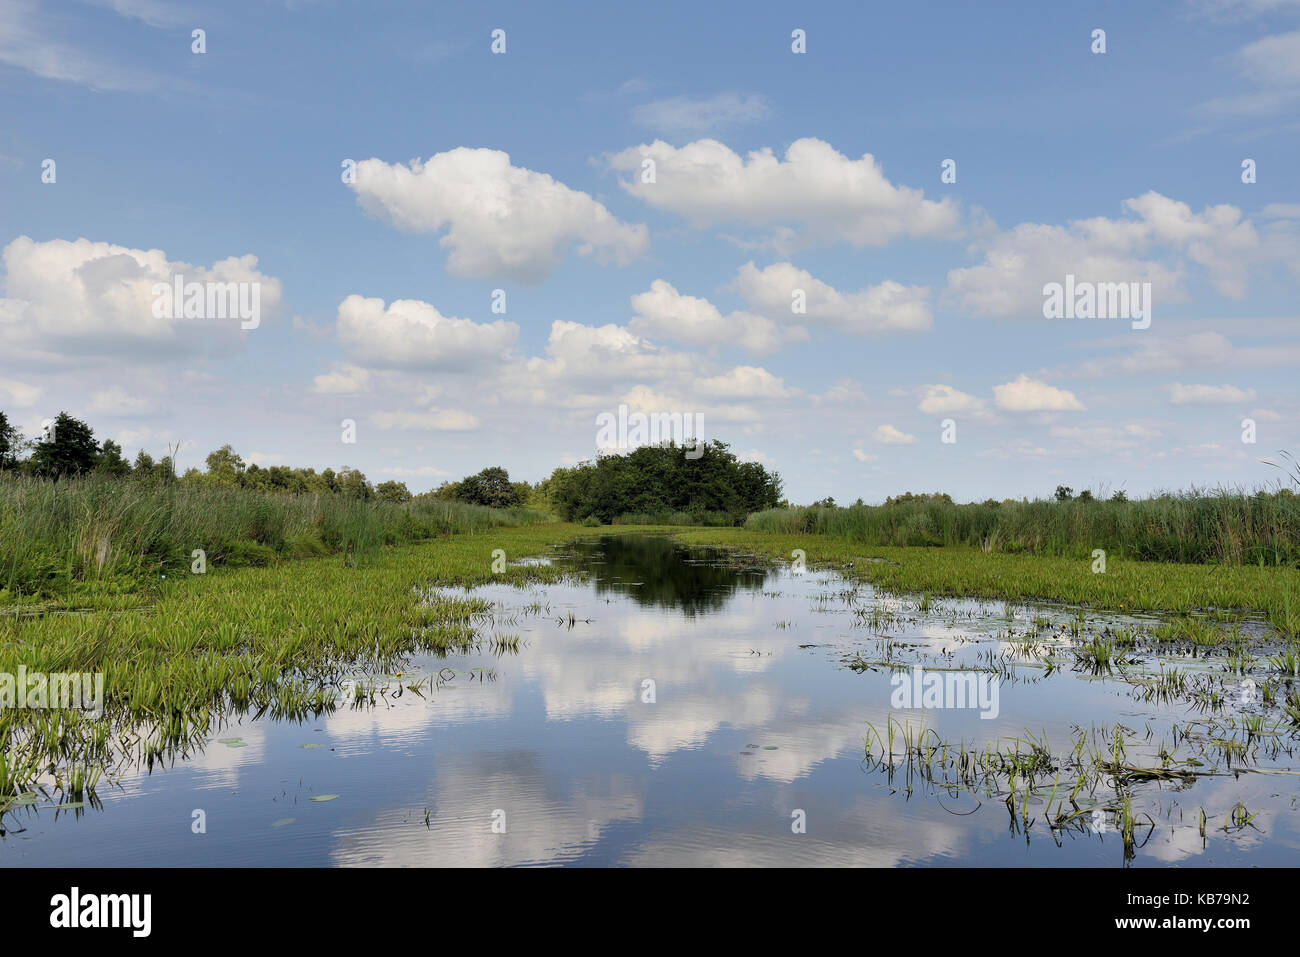 National Parc Weerribben-Wieden is a peat-bog area with reed, open water and Water Soldiers (Stratiotes aloides), - Stock Image